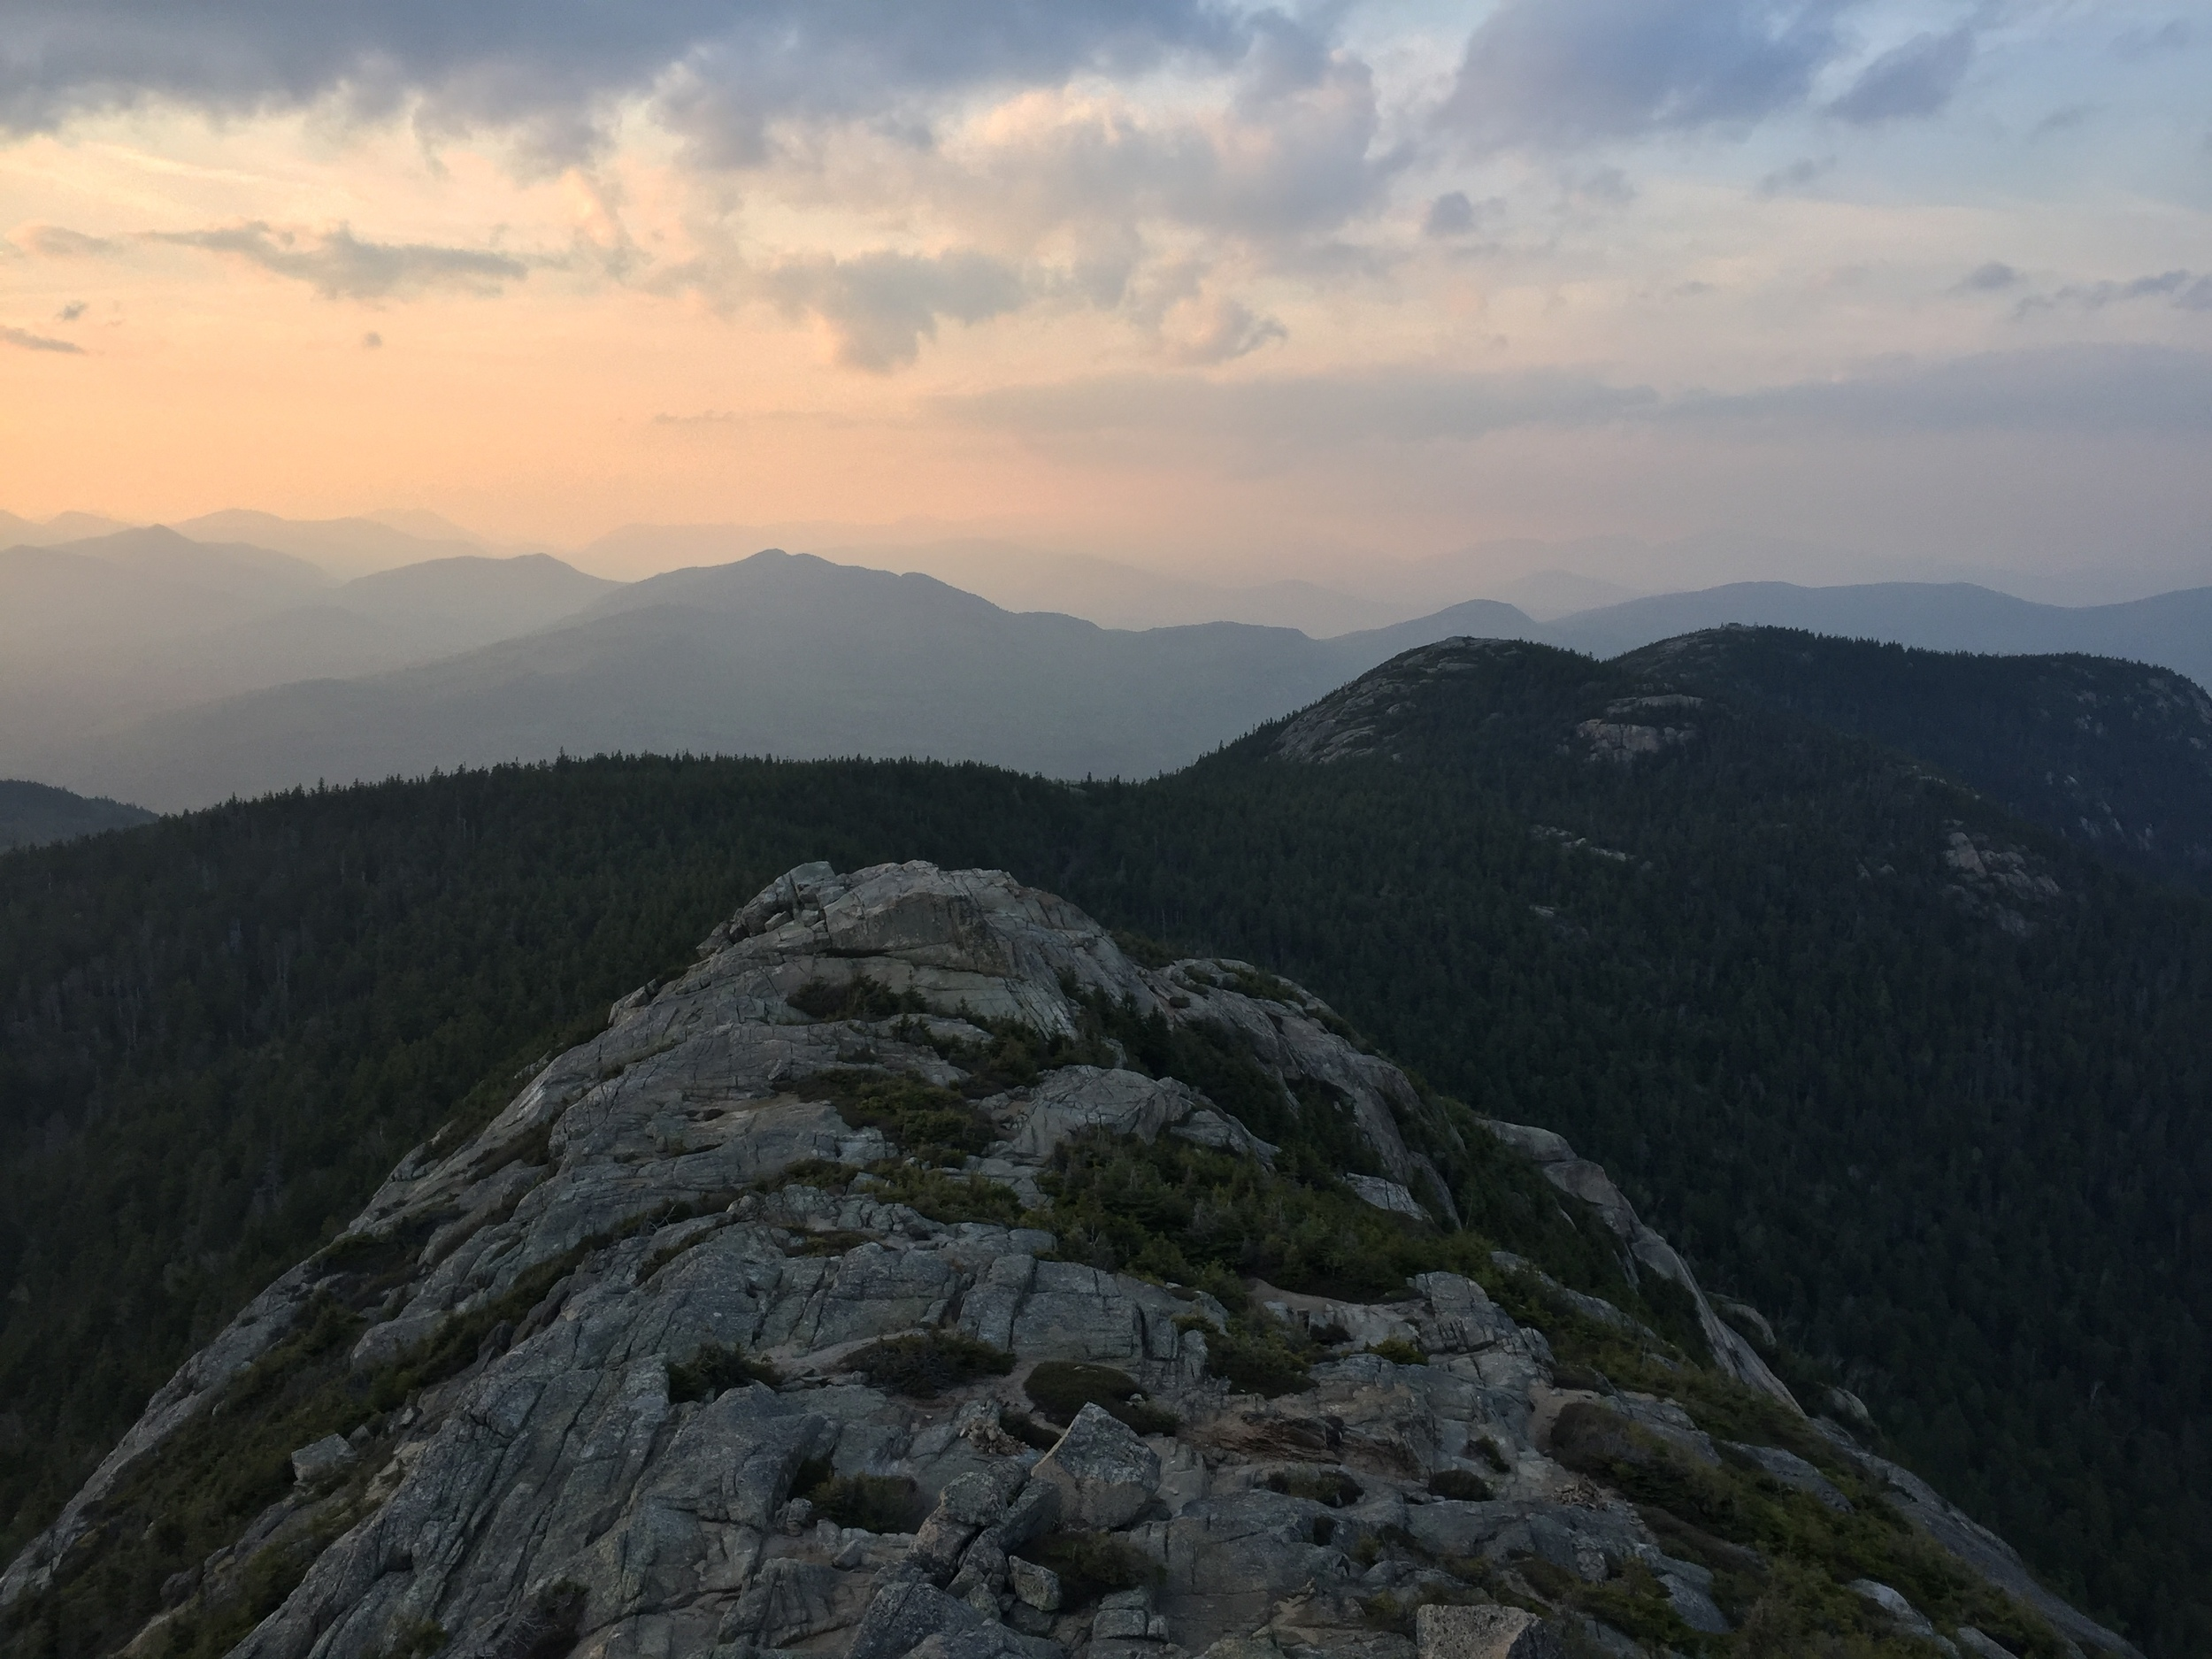 Northern view from summit of Mount Chocorua.